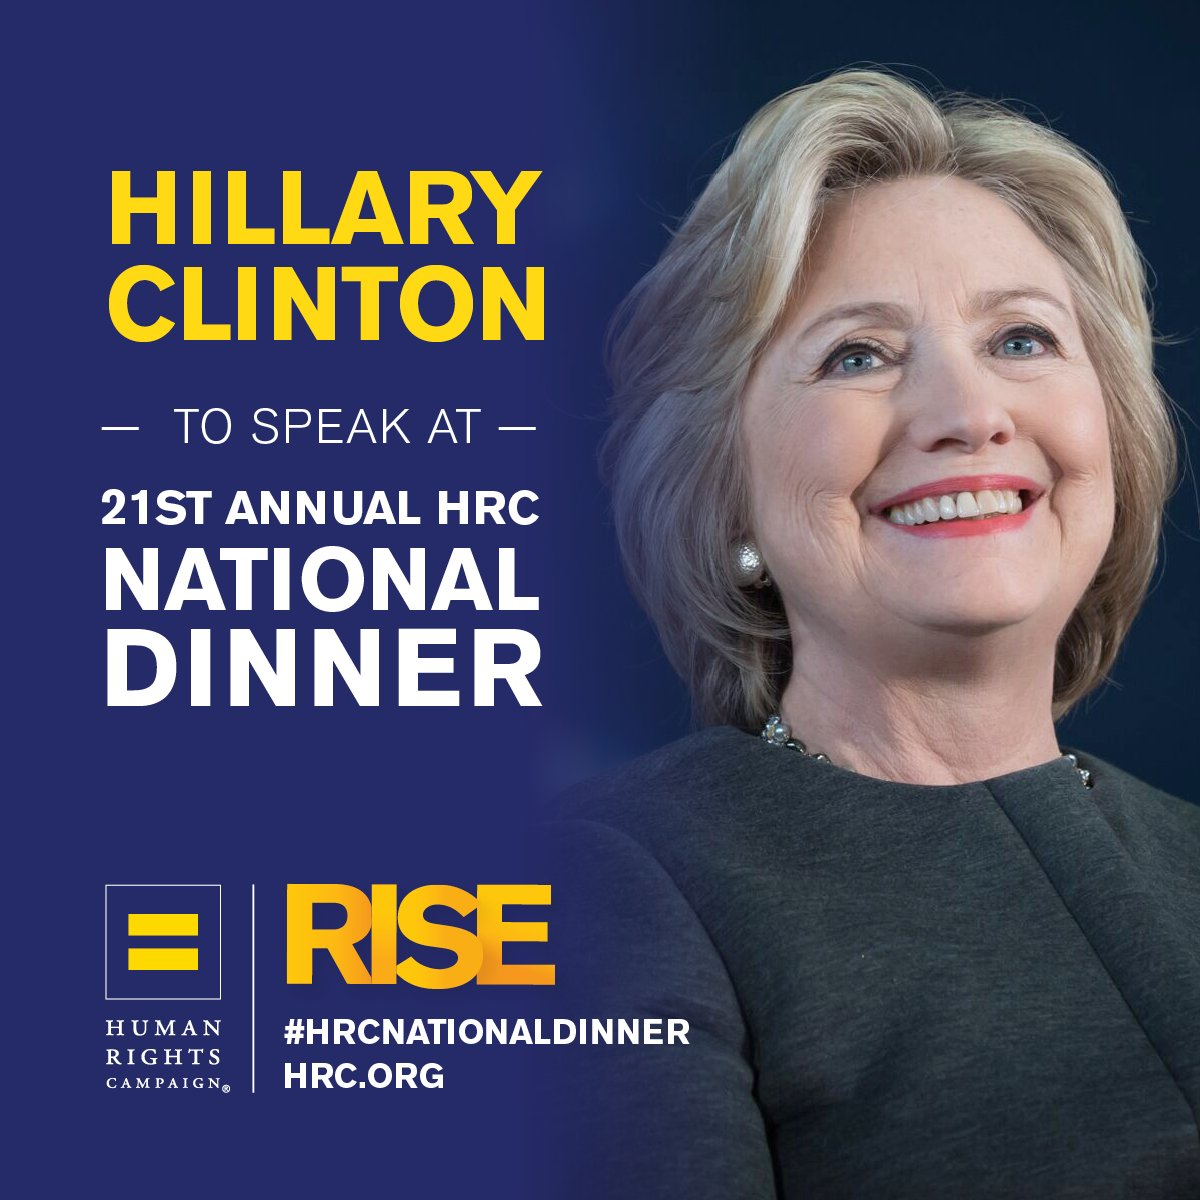 .@HRC is excited to welcome back @HillaryClinton to the #HRCNationalDinner. https://t.co/FW6LLiDOnx